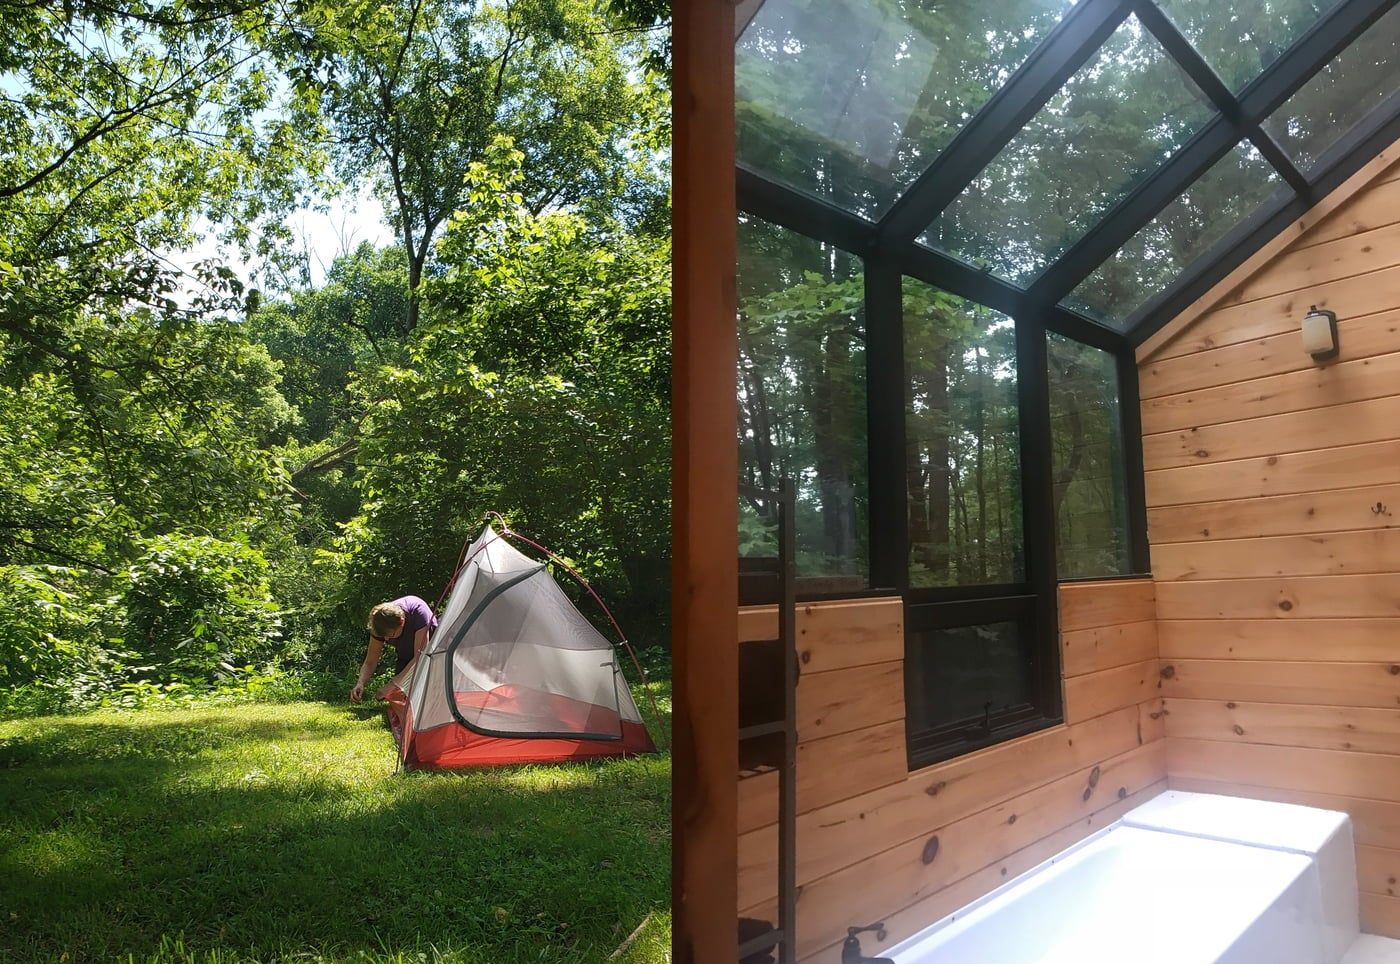 Left: person setting up orange tent in a grassy wooded area Right: bathtub in wooden cabin with picture windows over the ceiling.